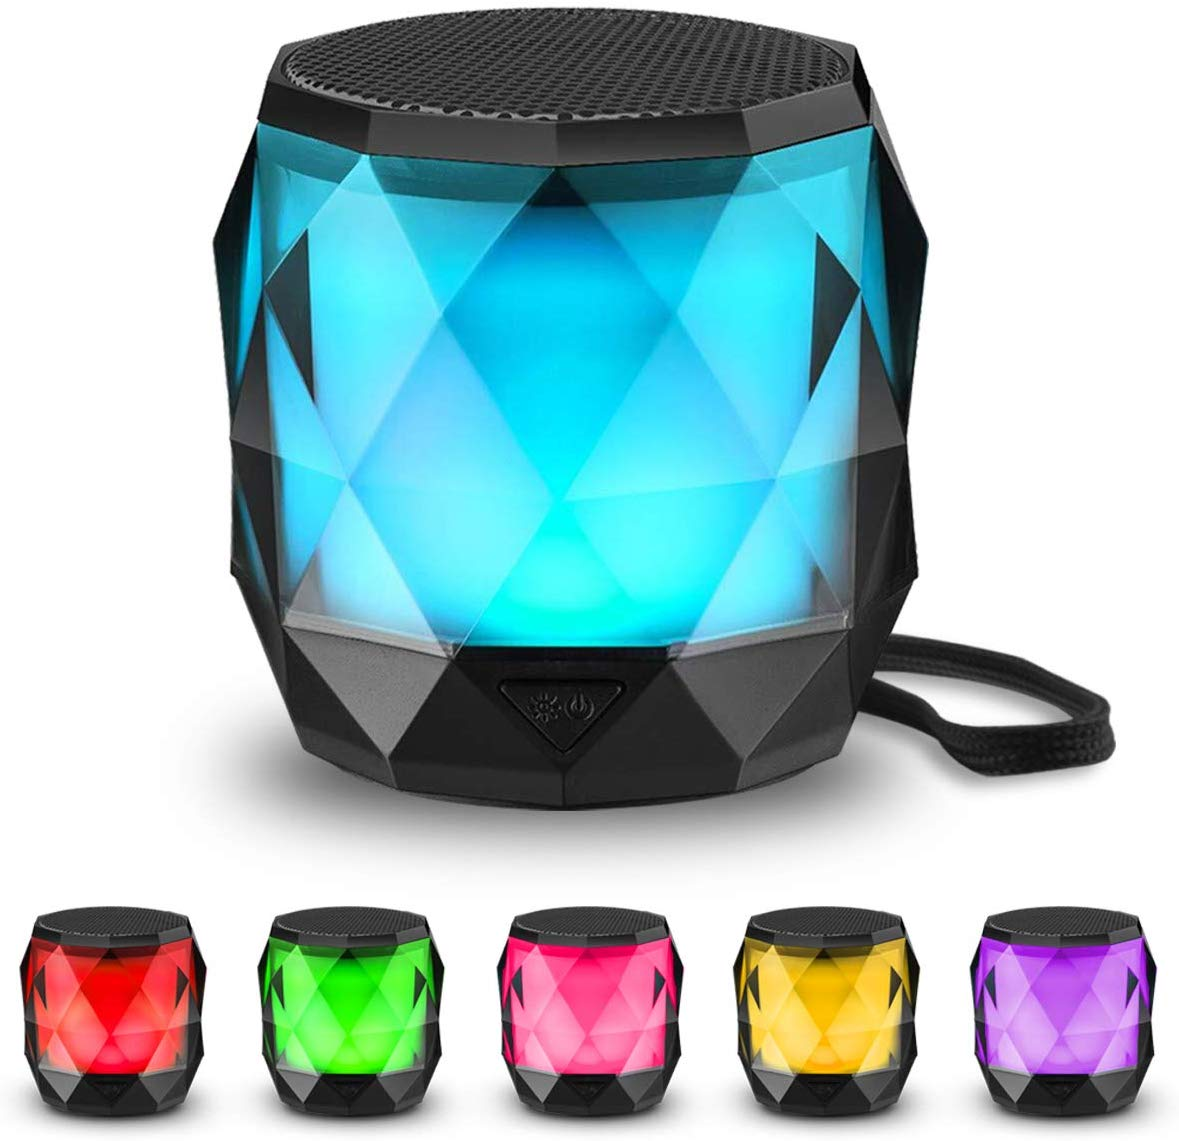 LFS Night Light Wireless Speaker